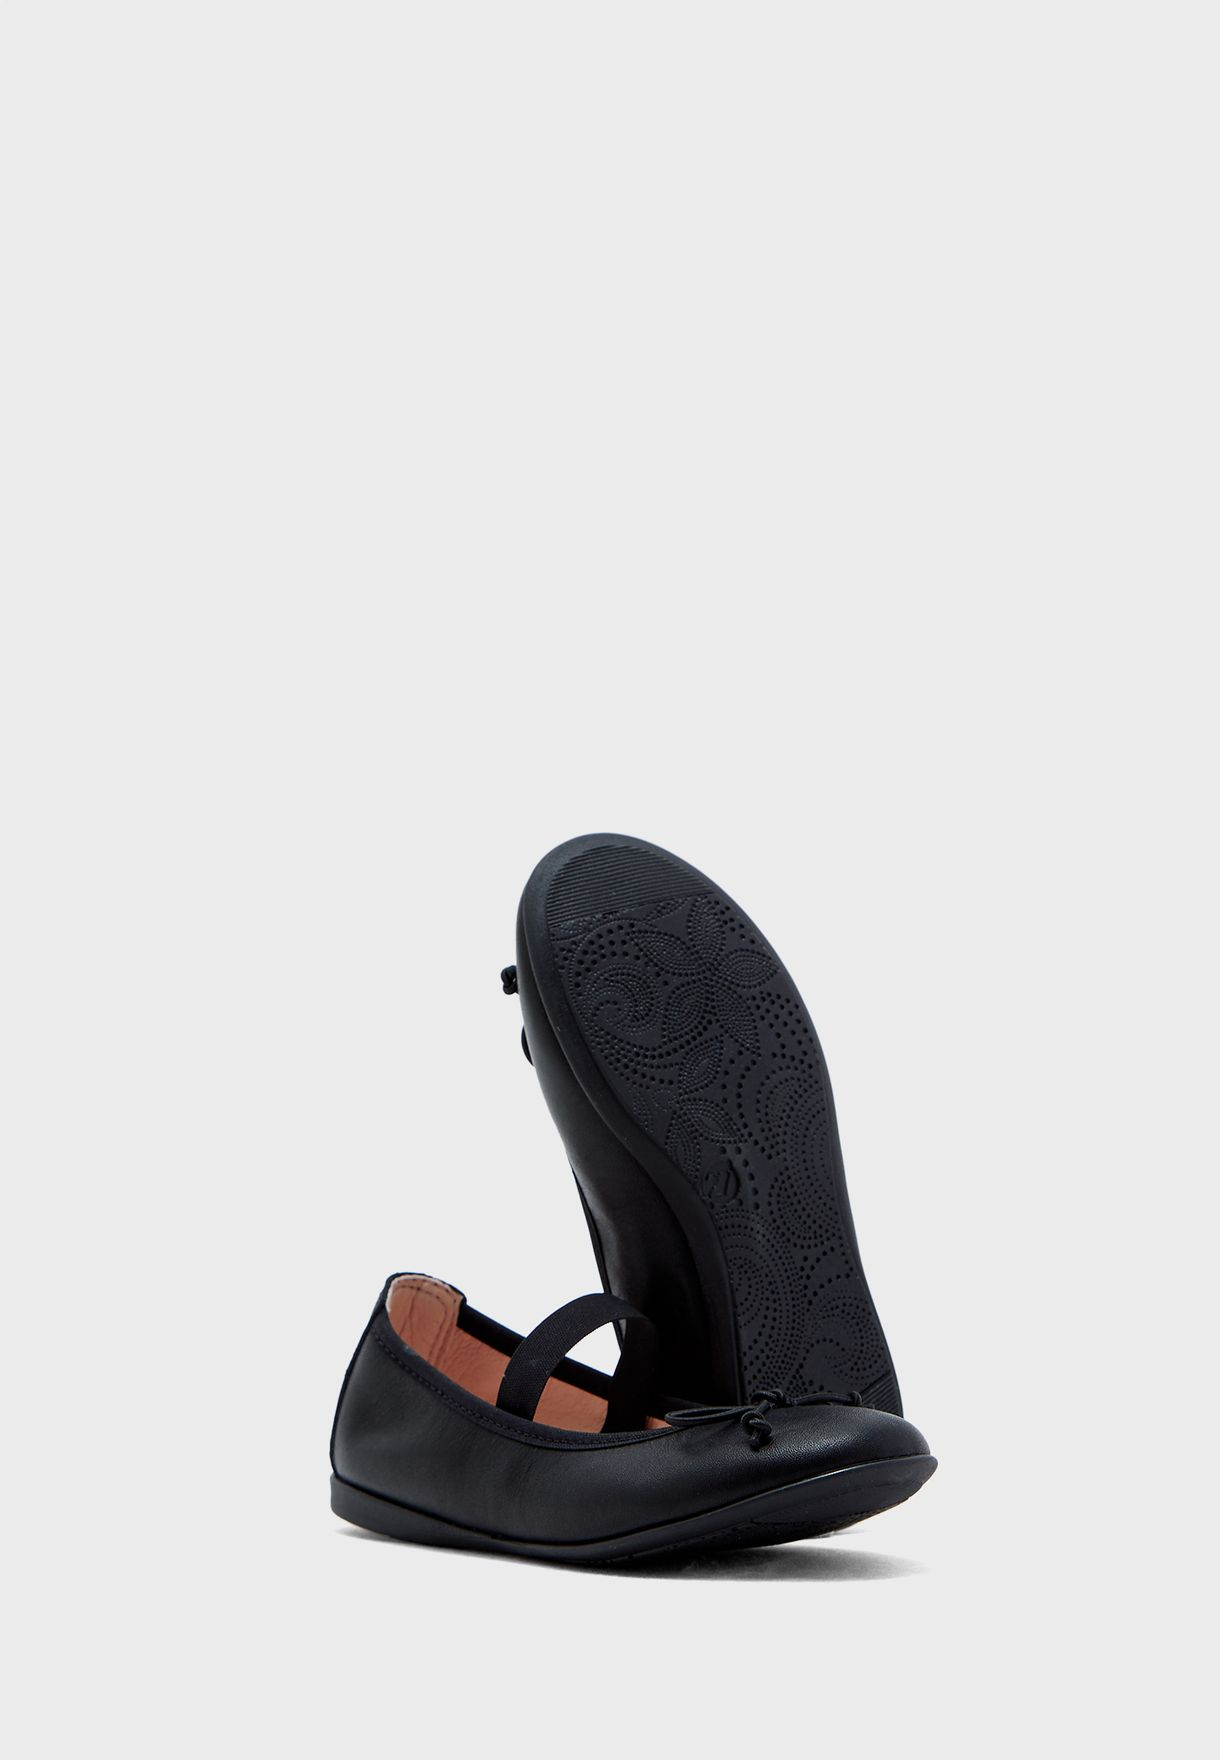 Kids Slip On Ballerina